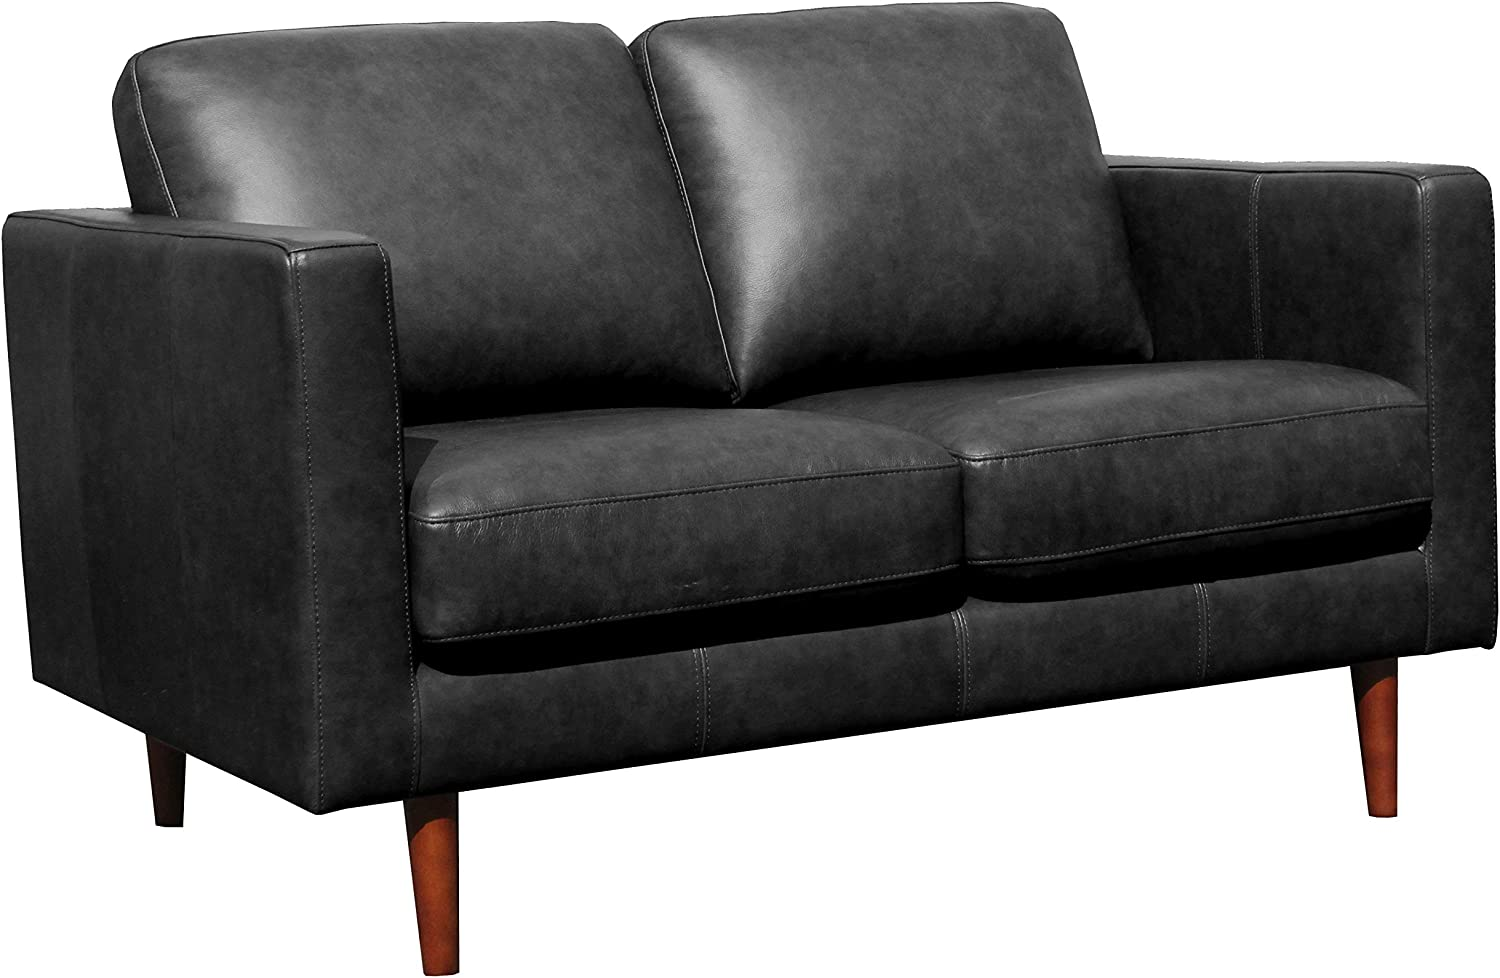 "Rivet Revolve Modern Leather Loveseat with Tapered Legs, 56.3""W, Black"